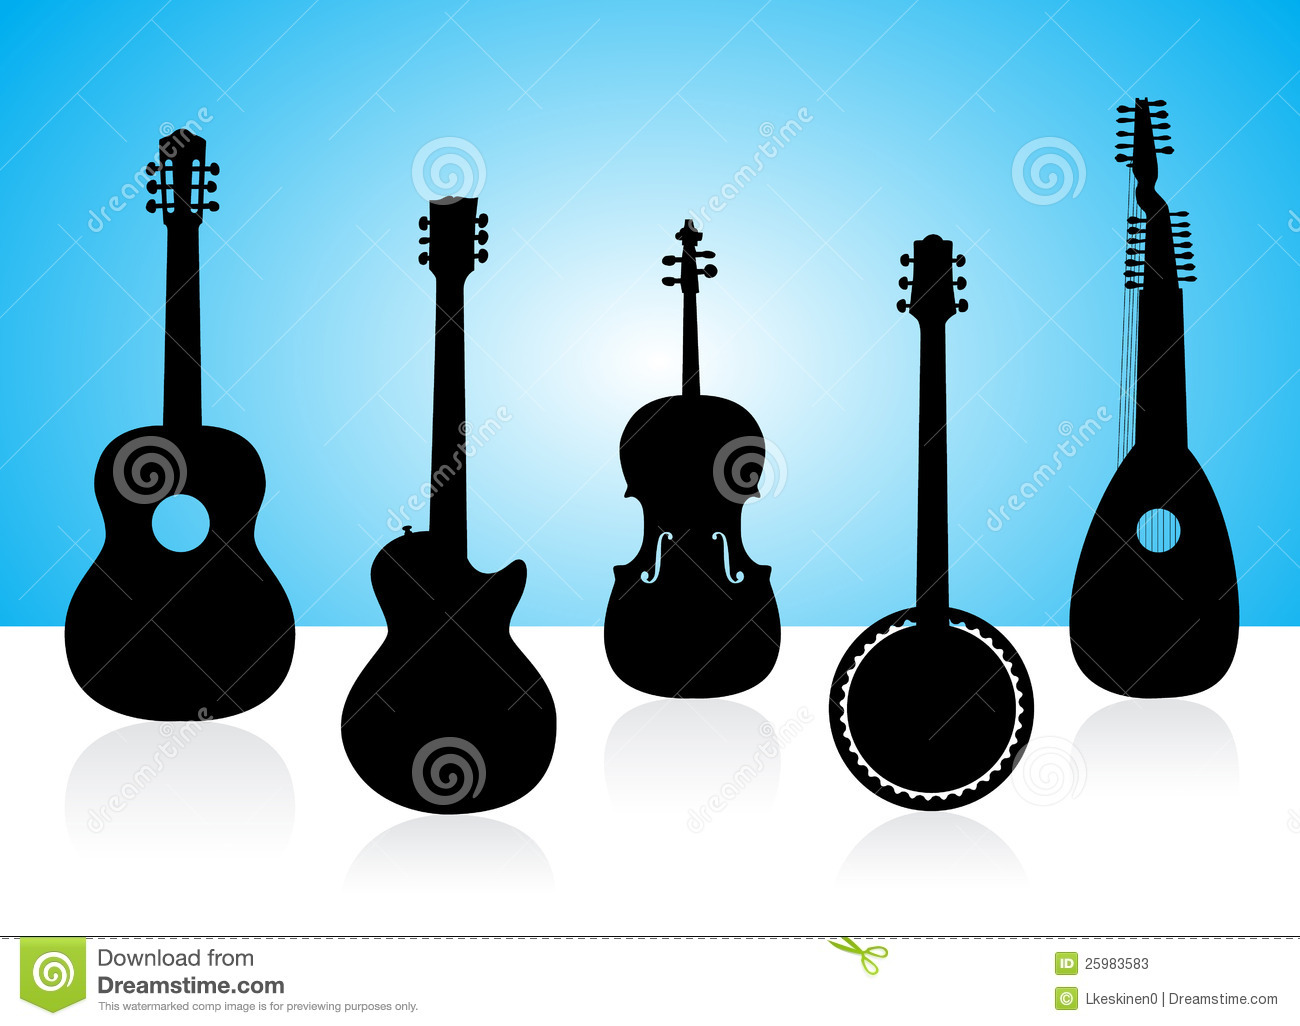 String Instruments Silhouettes Stock Photos   Image  25983583